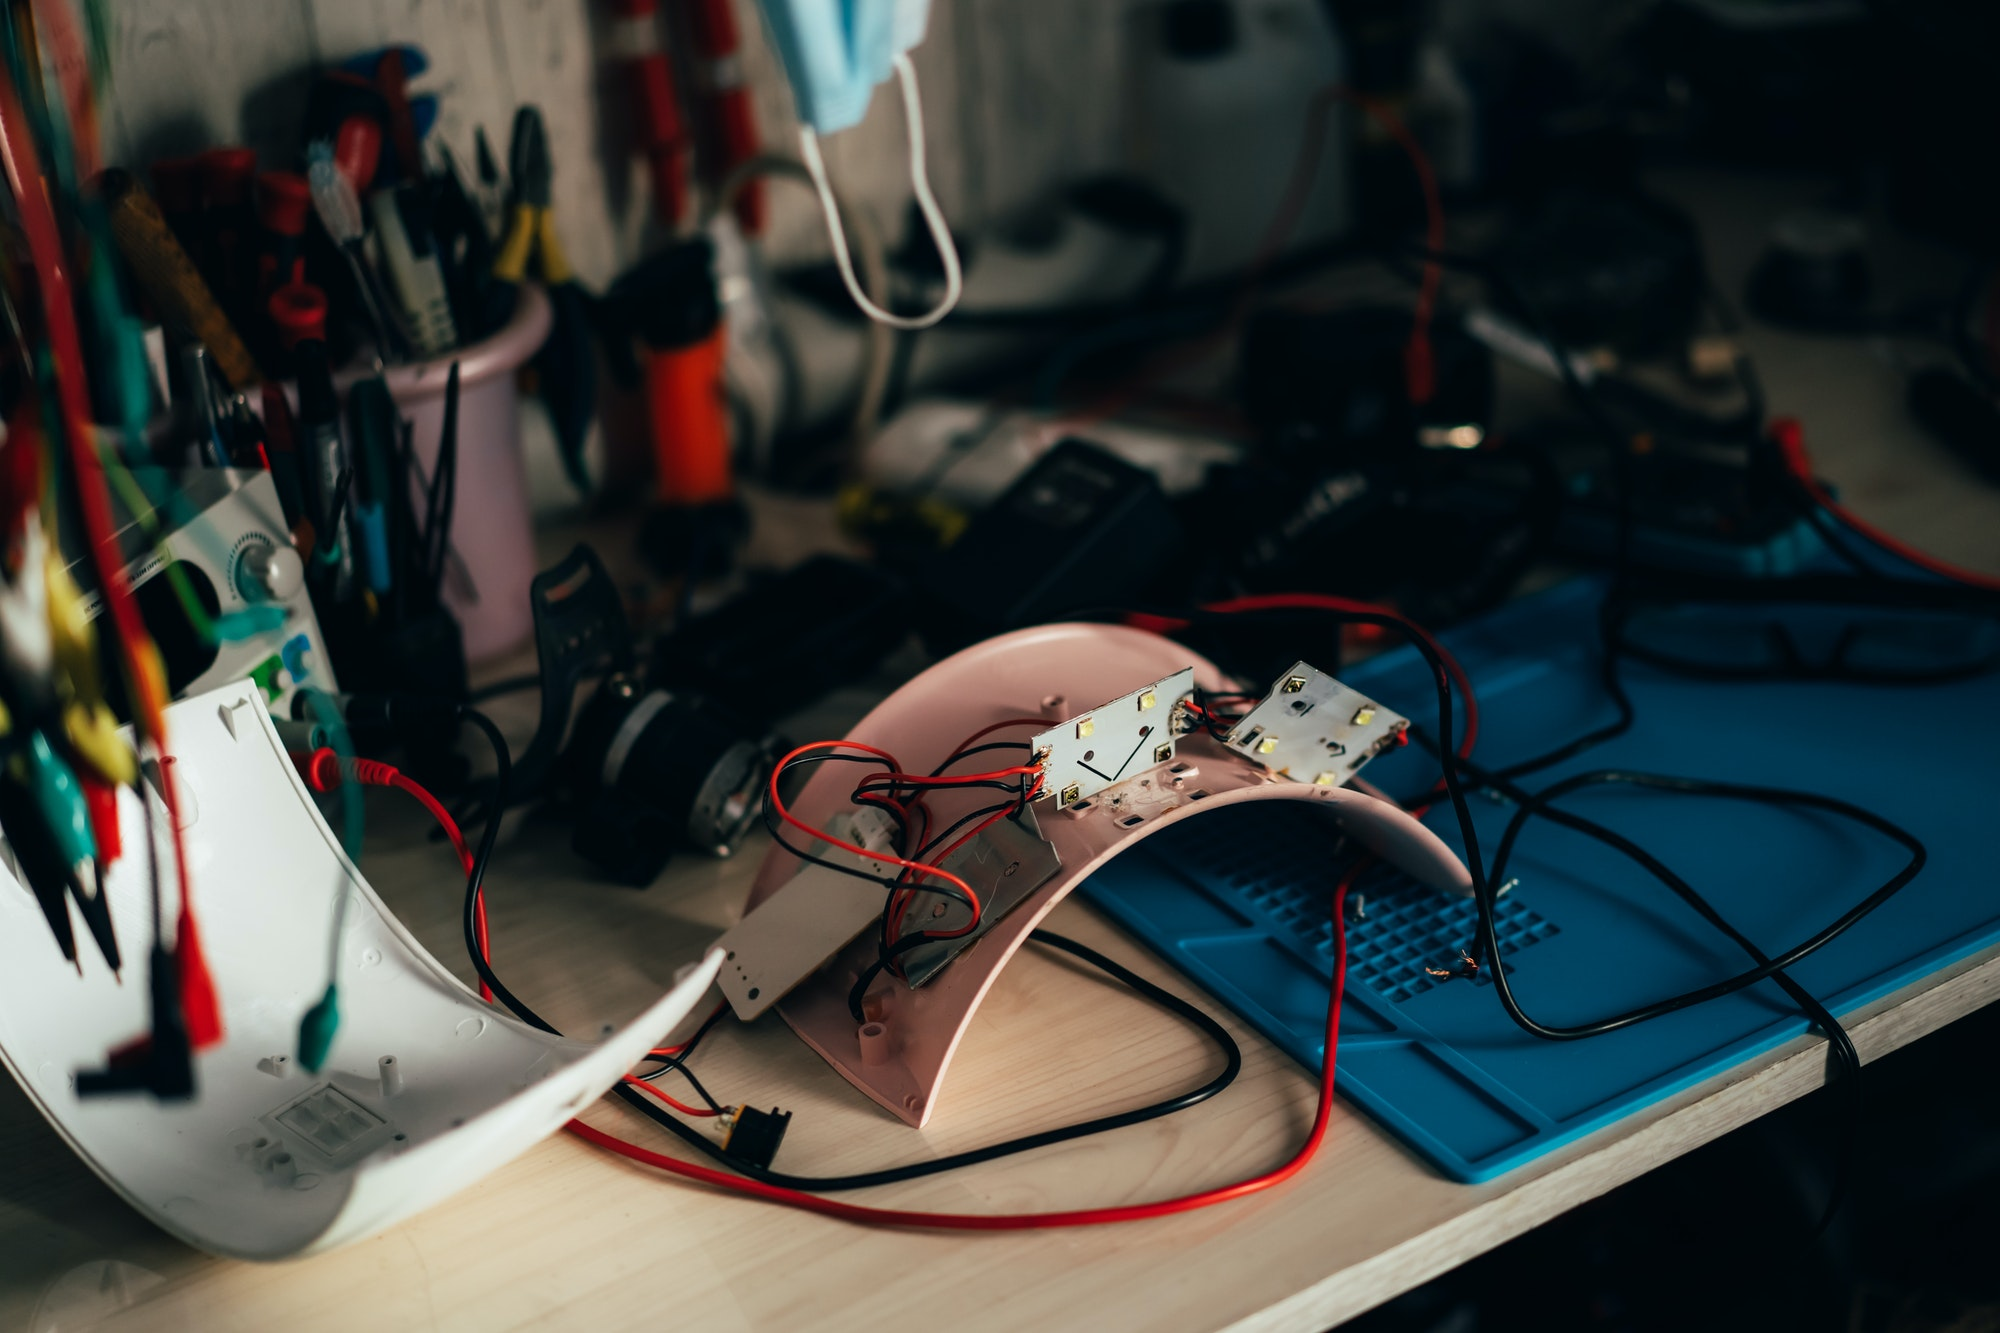 Repair of electrical equipment in the service center. Repair of low-quality equipment